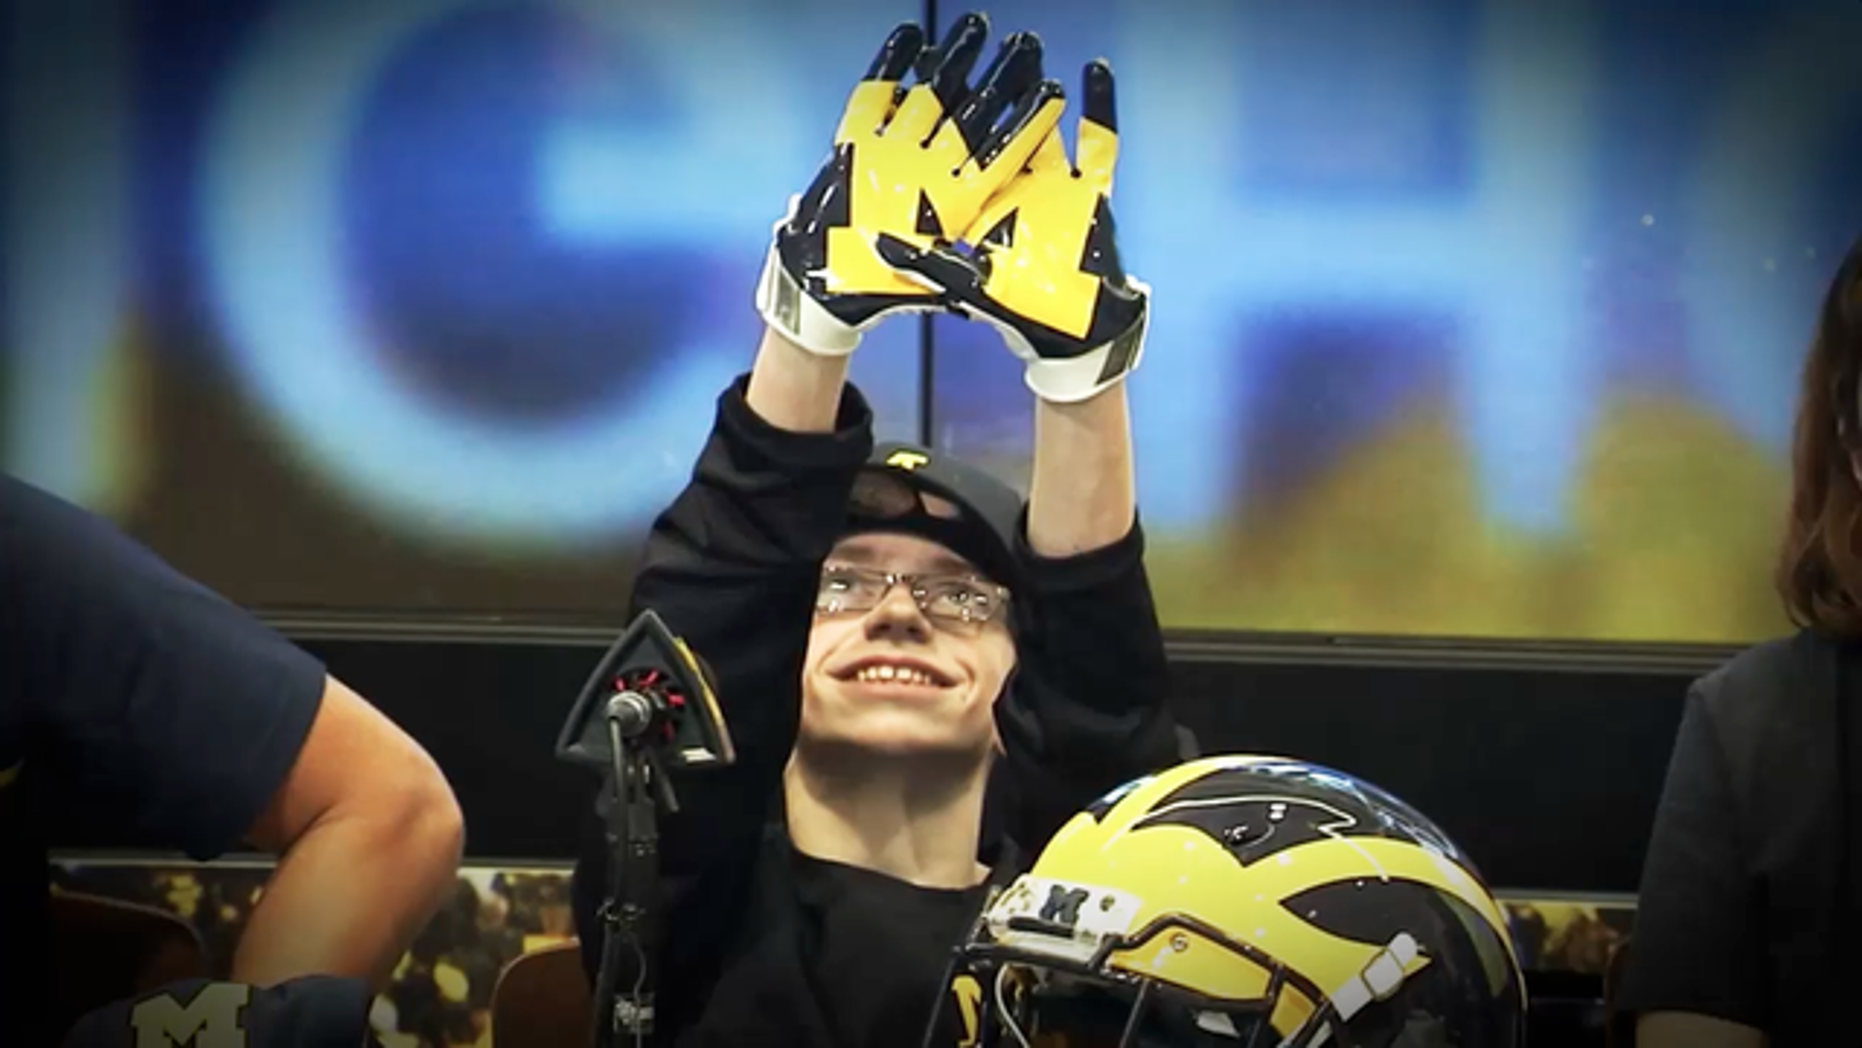 Larry Prout Jr. was made an honorary member of the Michigan Wolverines.